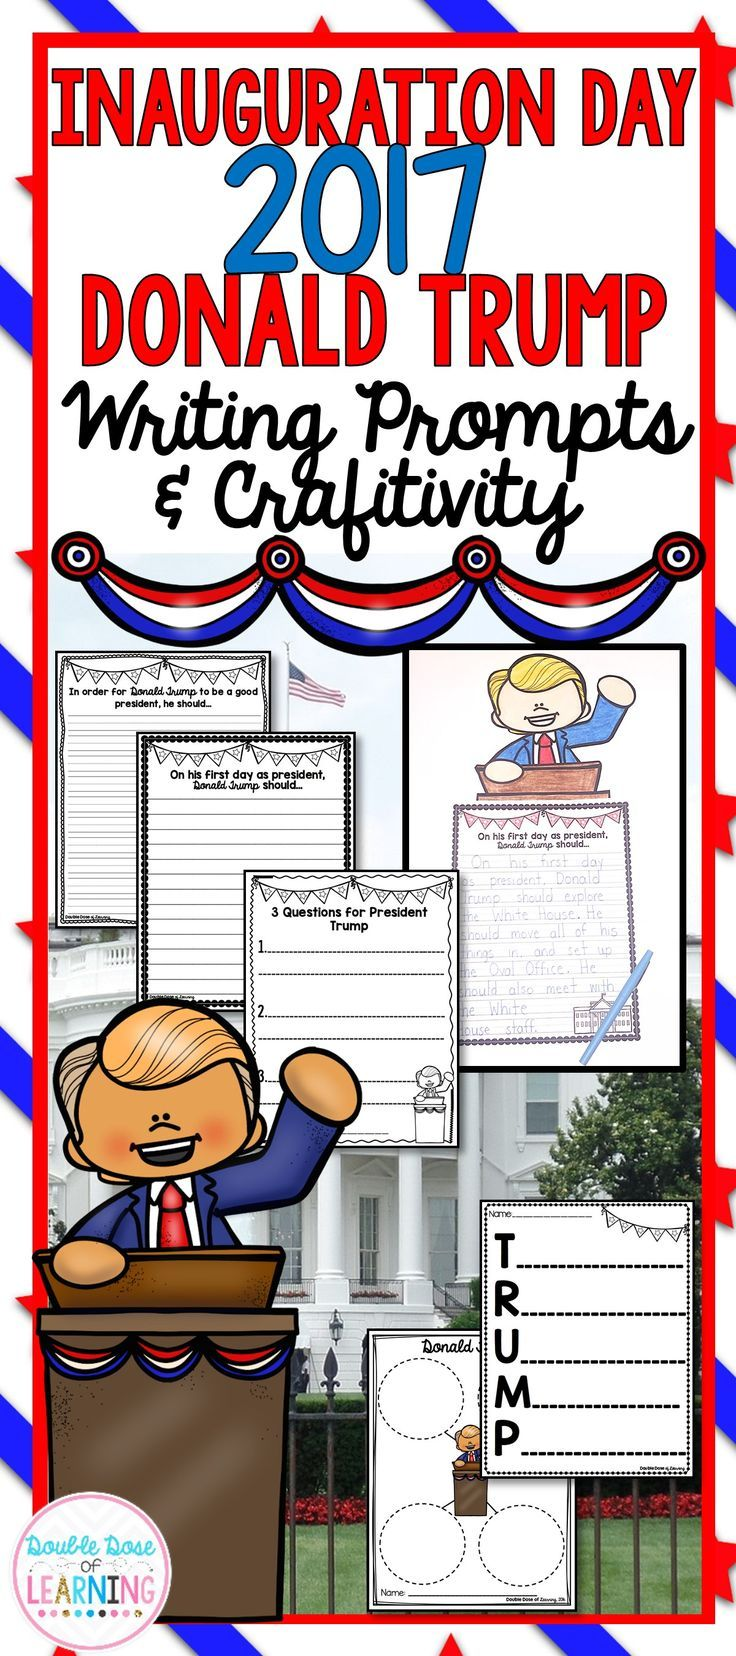 Inauguration Day 2017 will be here soon! Help your students learn about the new president, Donald Trump by organizing their thoughts and responding to multiple writing prompts. In addition, there is an adorable Donald Trump craftivity---they are perfect for hallway displays or bulletin boards! Students will get their creative ideas flowing, and write down their questions for the new president, write about suggestions for his first day in the White House, complete an acrostic poem, and more!